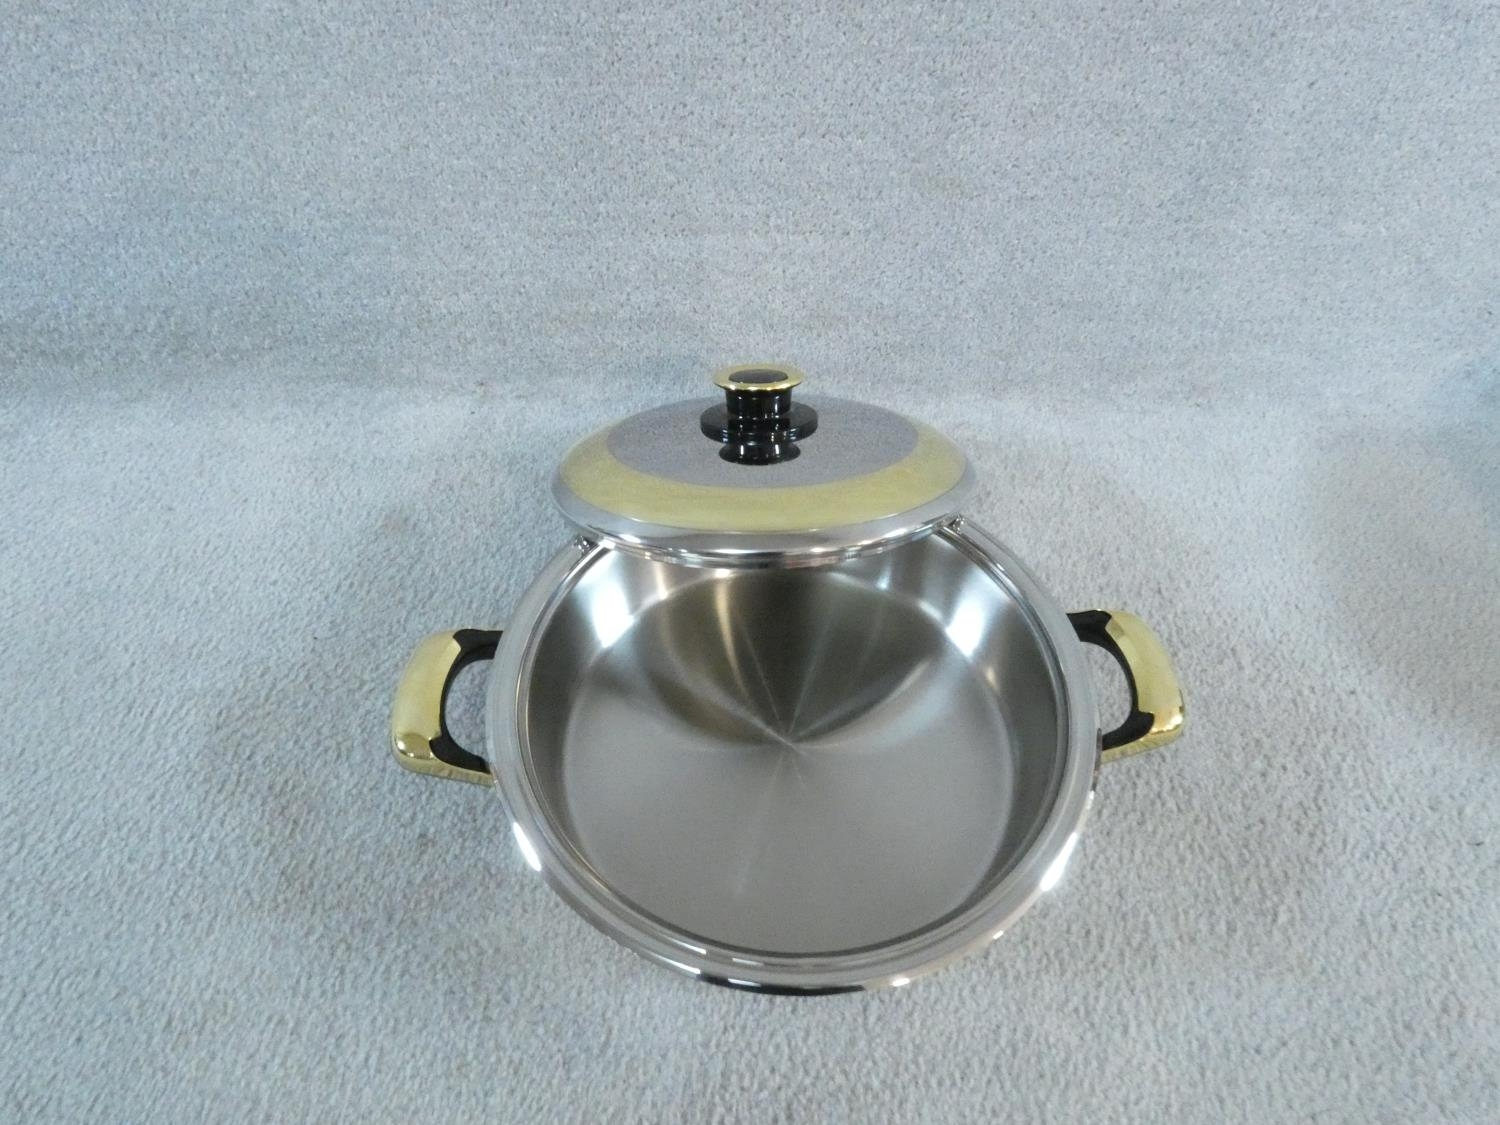 A set of boxed stainless steel as new Cameo Royale pans and cookware with 24k gold plated - Image 15 of 22